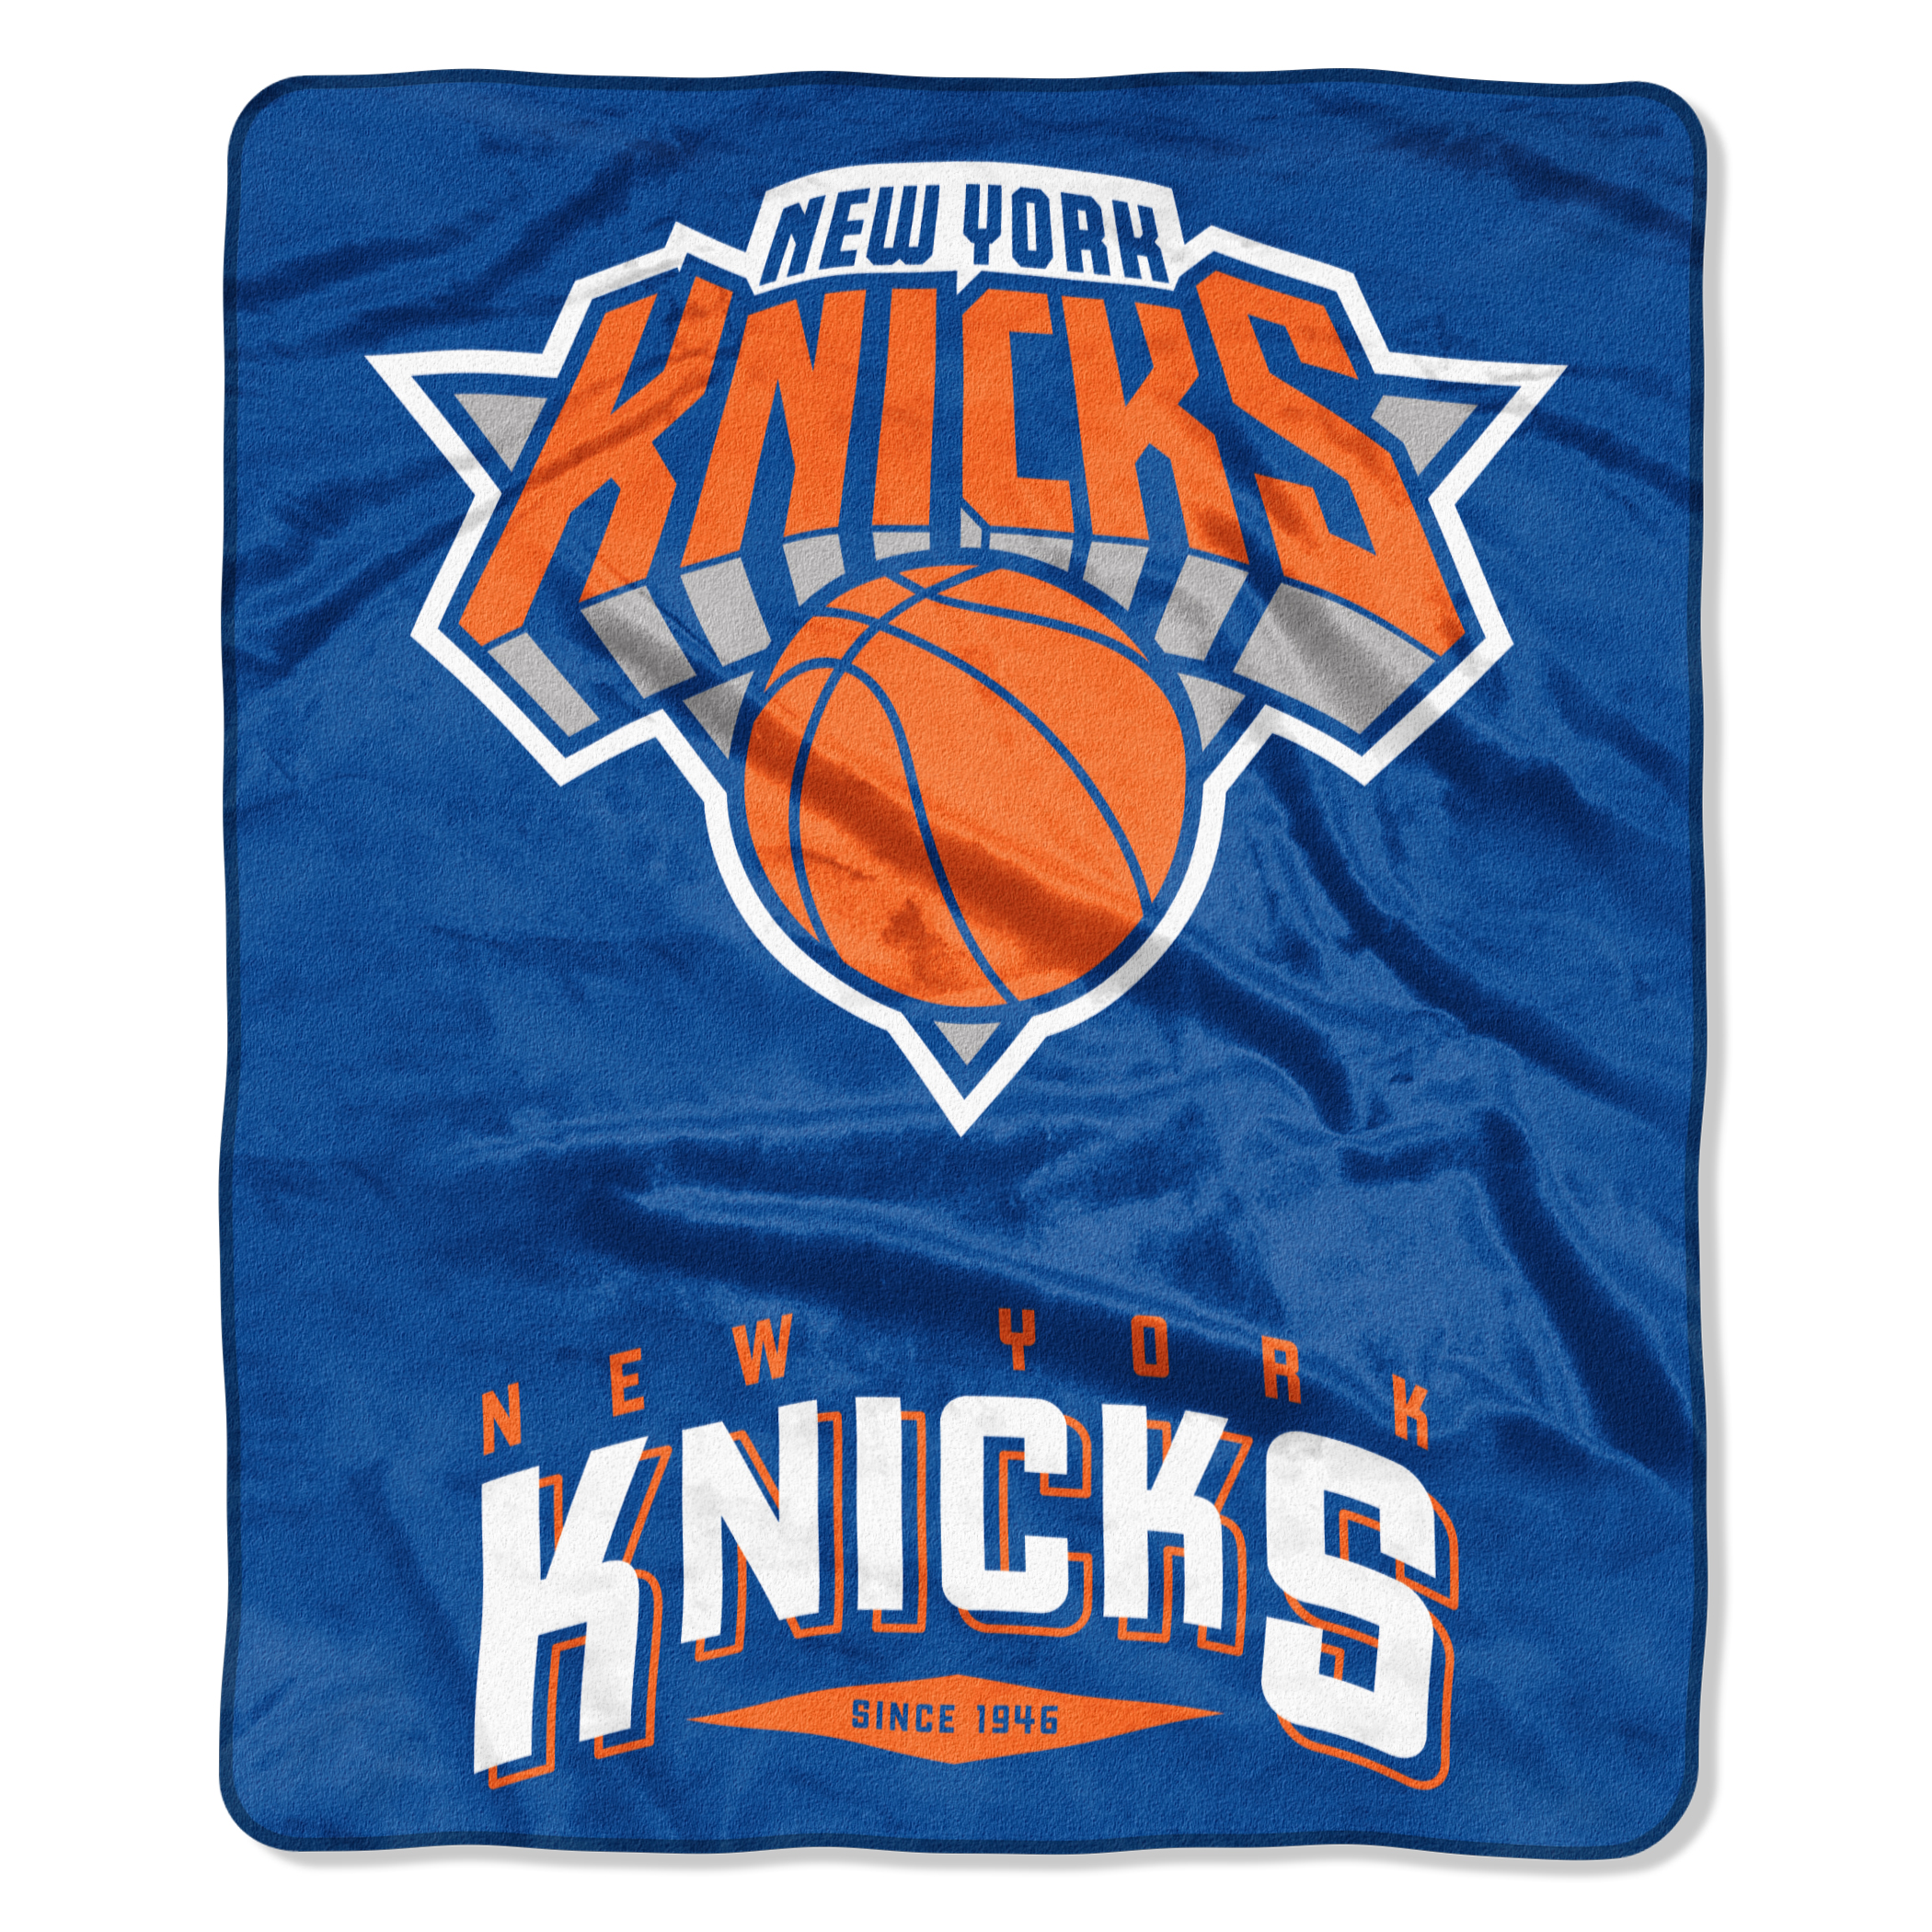 "New York Knicks The Northwest Company 50"" x 60"" Arc Raschel Throw Blanket - No Size"